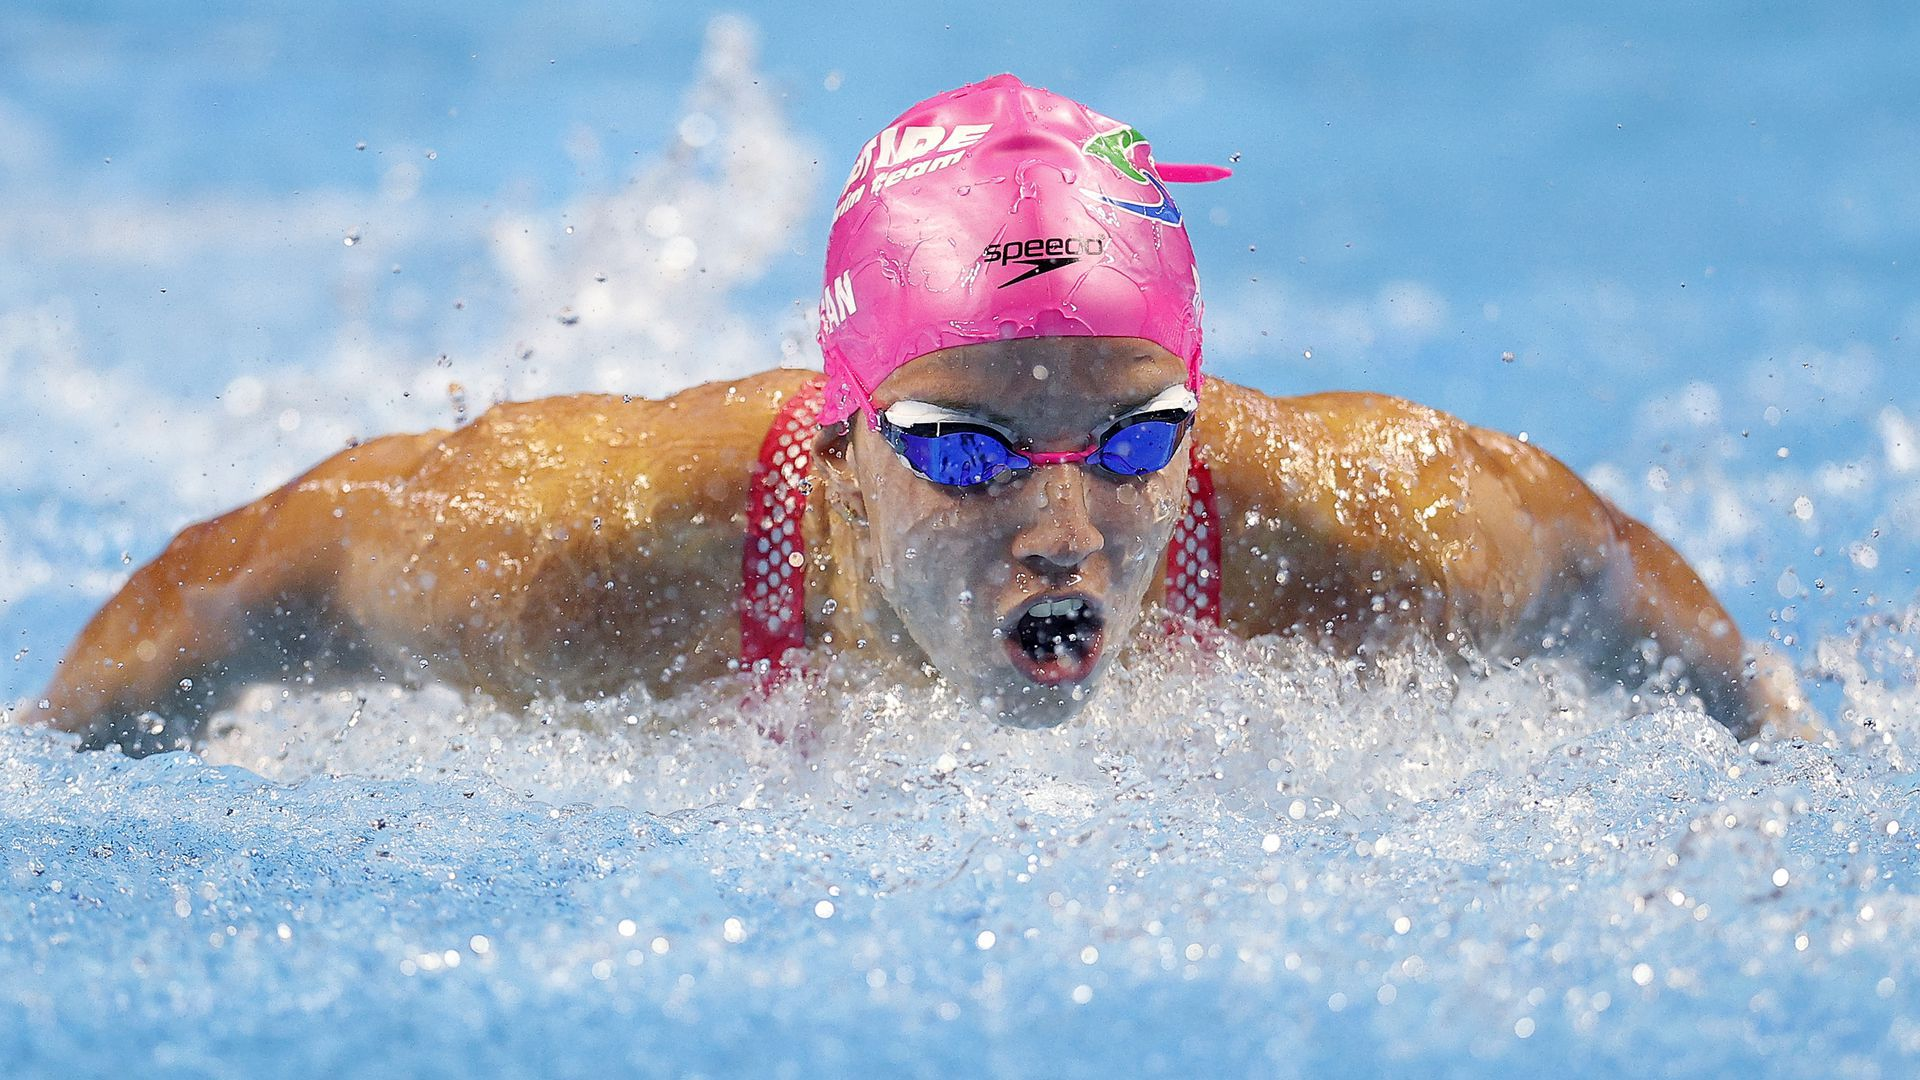 Swimmer Regan Smith competes in Tokyo Olympics qualifying trials.